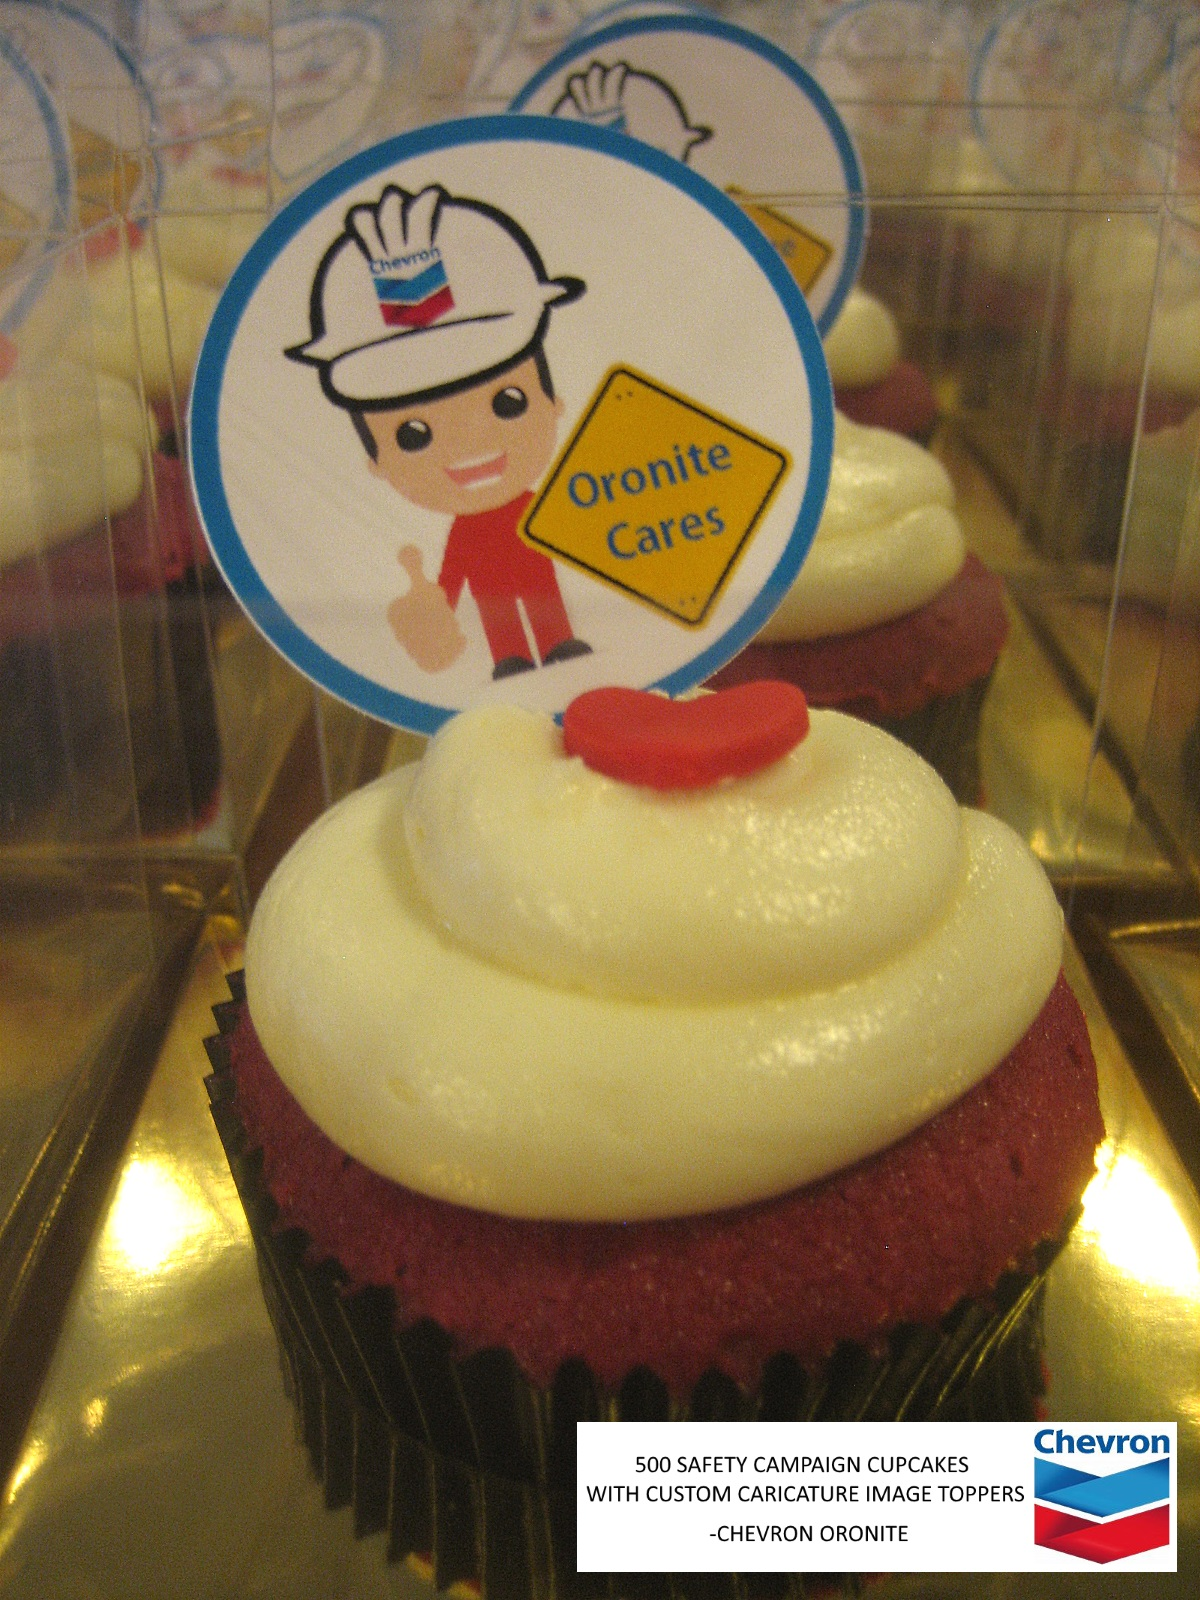 CHEVRON-SAFETY-CAMPAIGN-CORPORATE-CUPCAKES